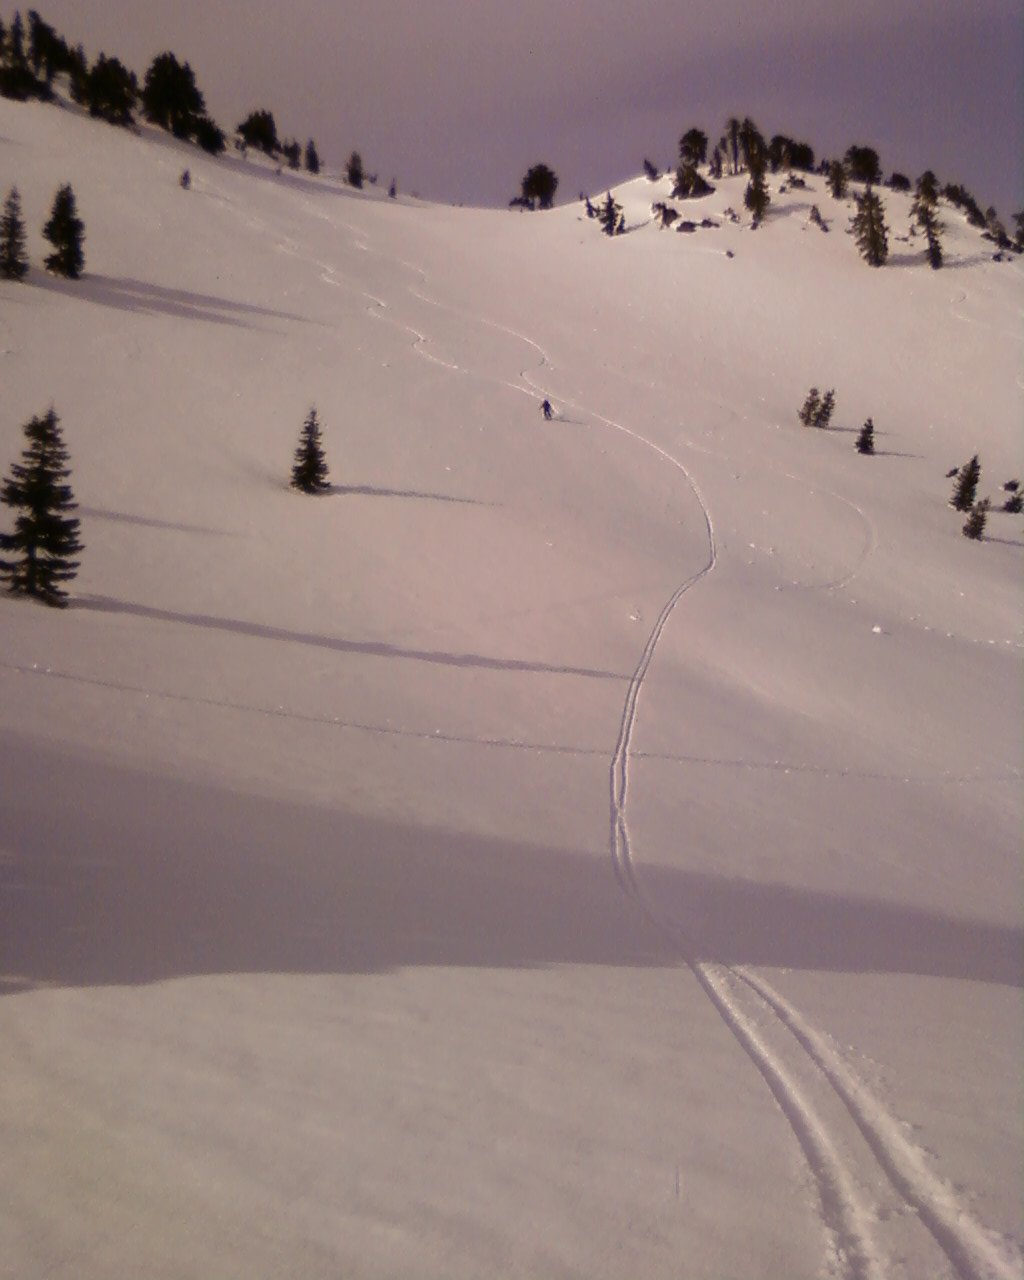 Earn your turns